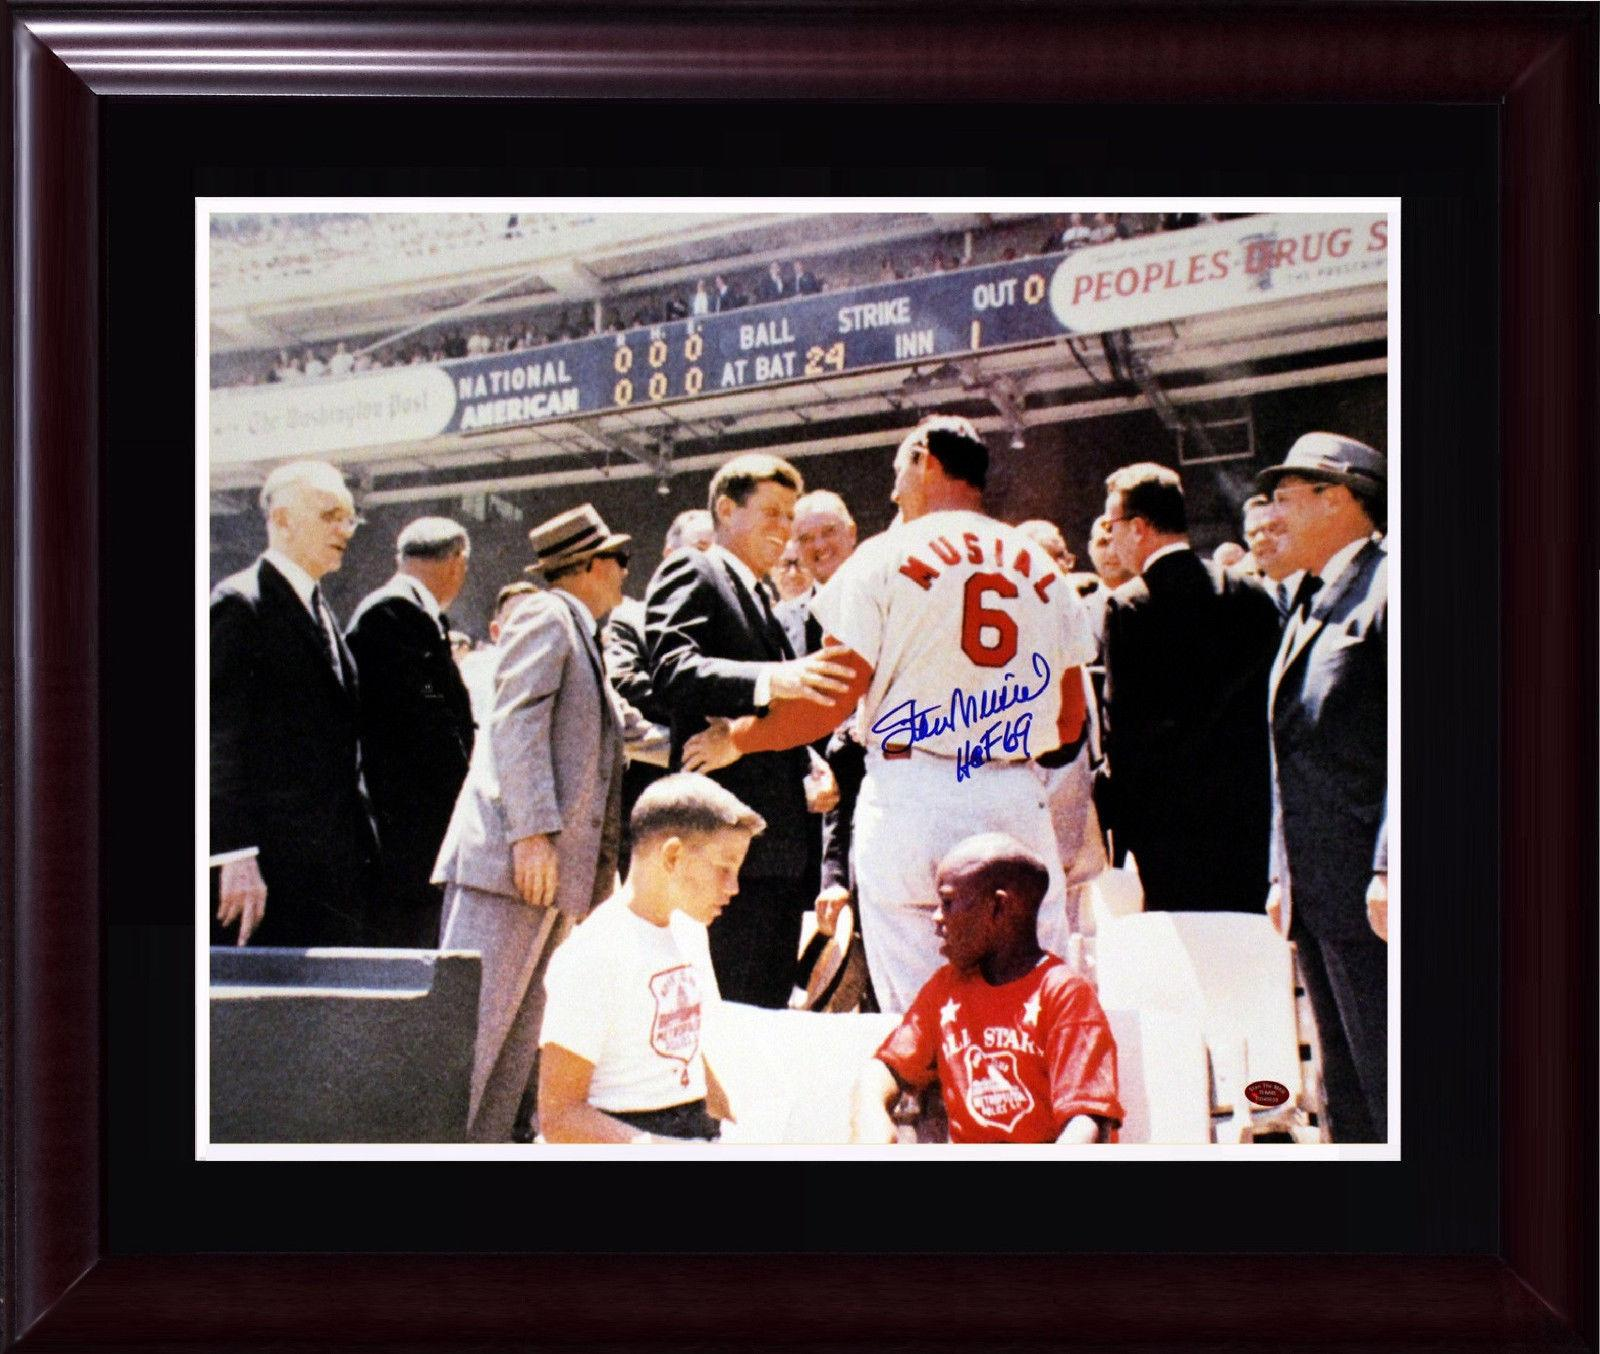 13 Steps for Shooting the Perfect Stan musial jfk photo